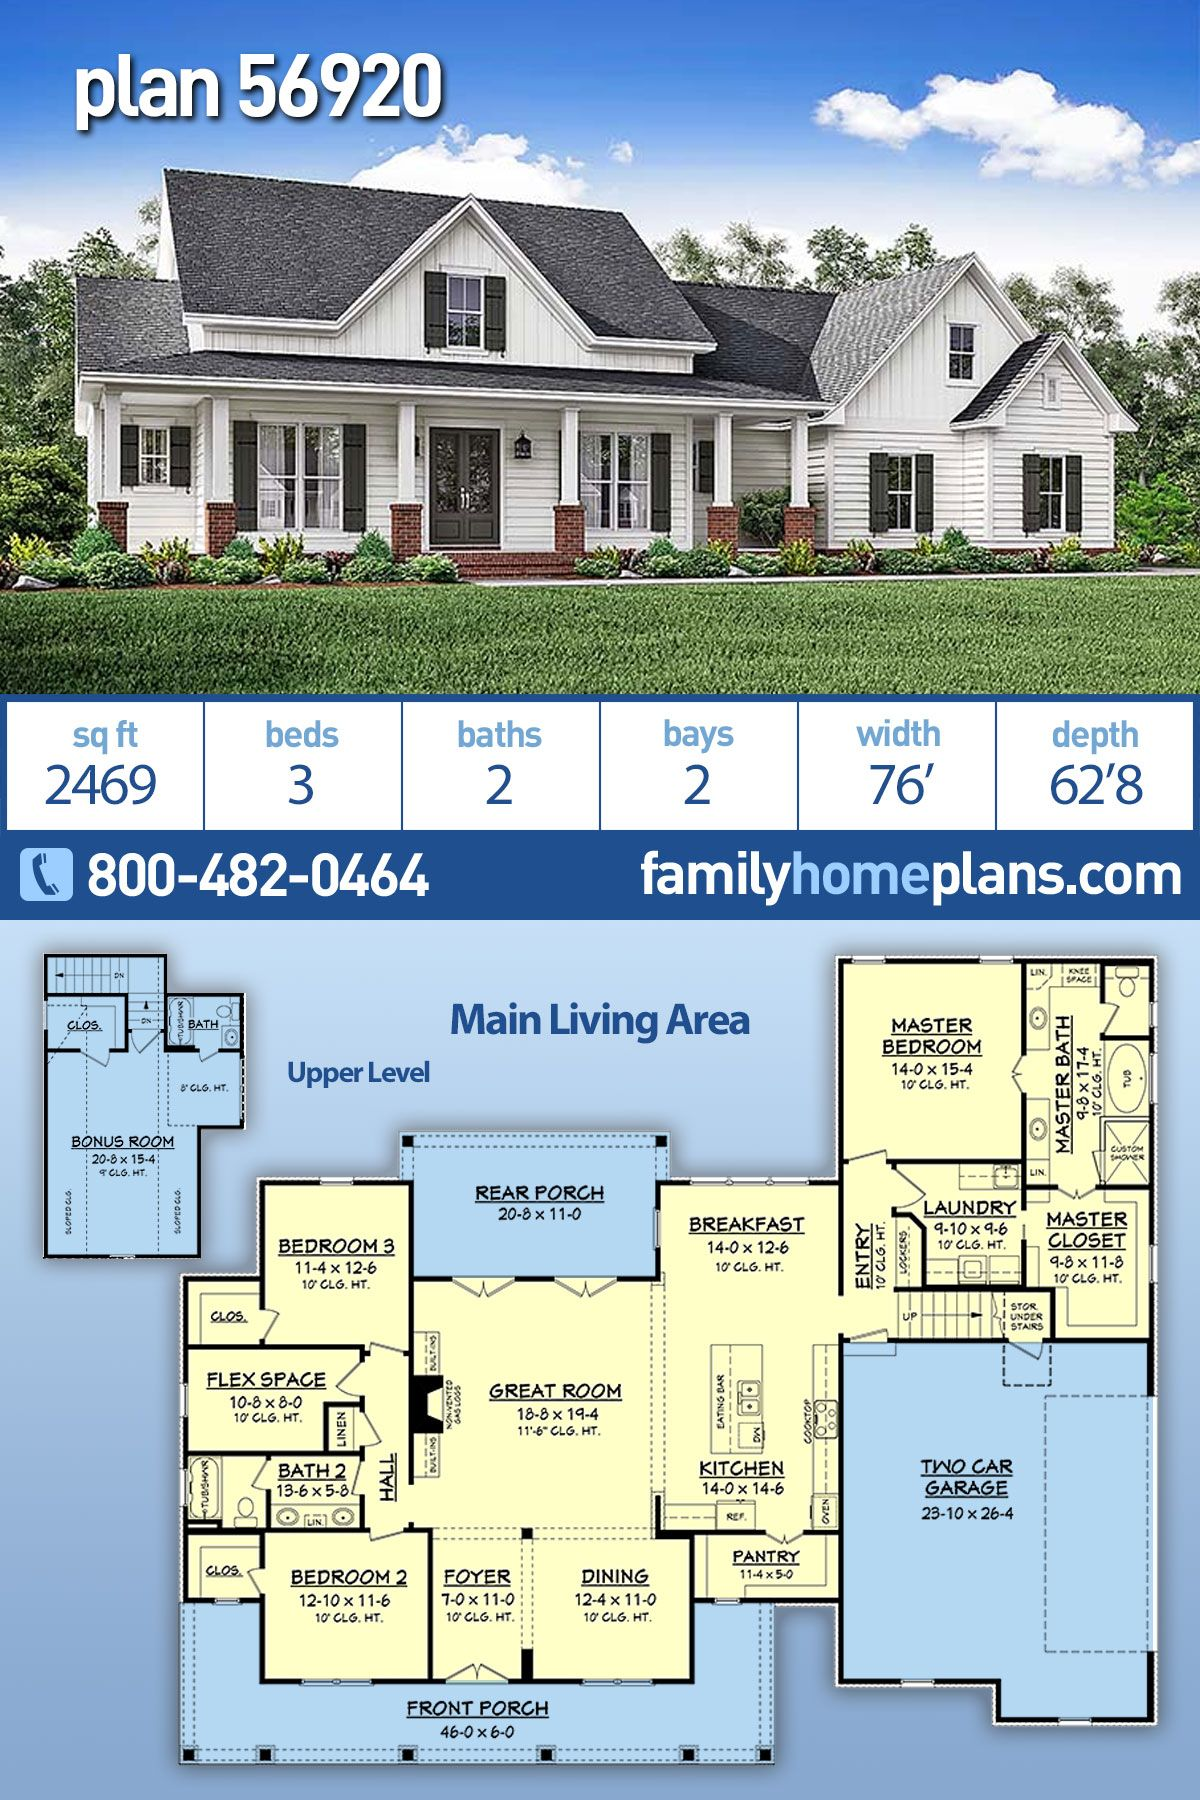 Traditional Style House Plan 56920 With 3 Bed 2 Bath 2 Car Garage Country House Plan Family House Plans House Plans Farmhouse